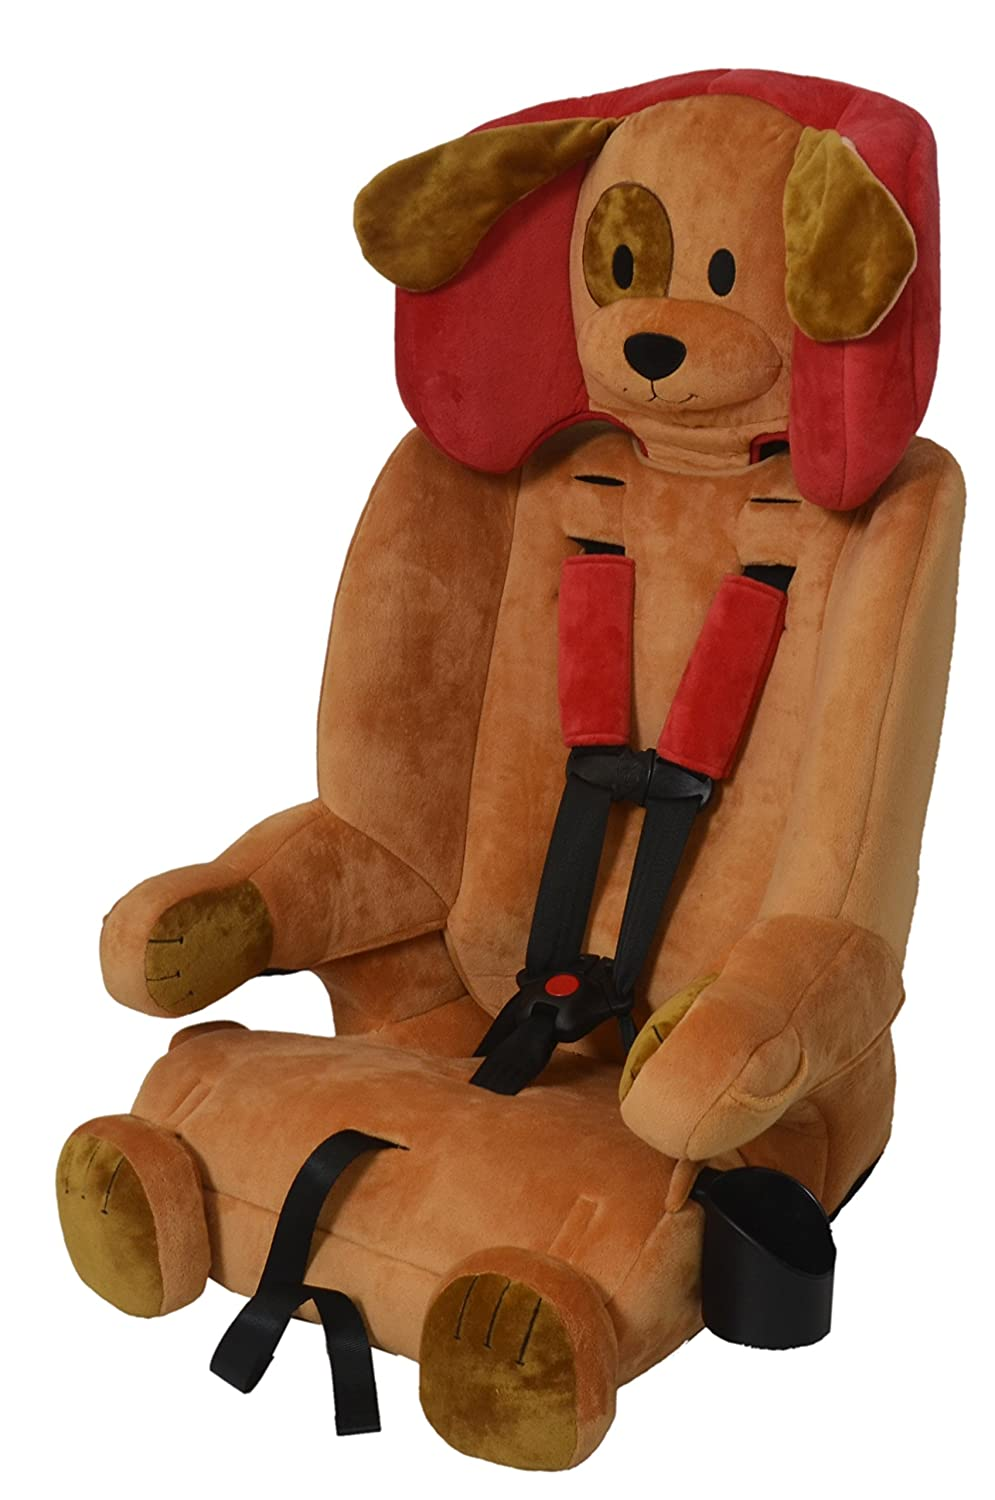 Sentry Guardimals Combination 3-in-1 Harness Booster Car Seat, Puppy 400021PP